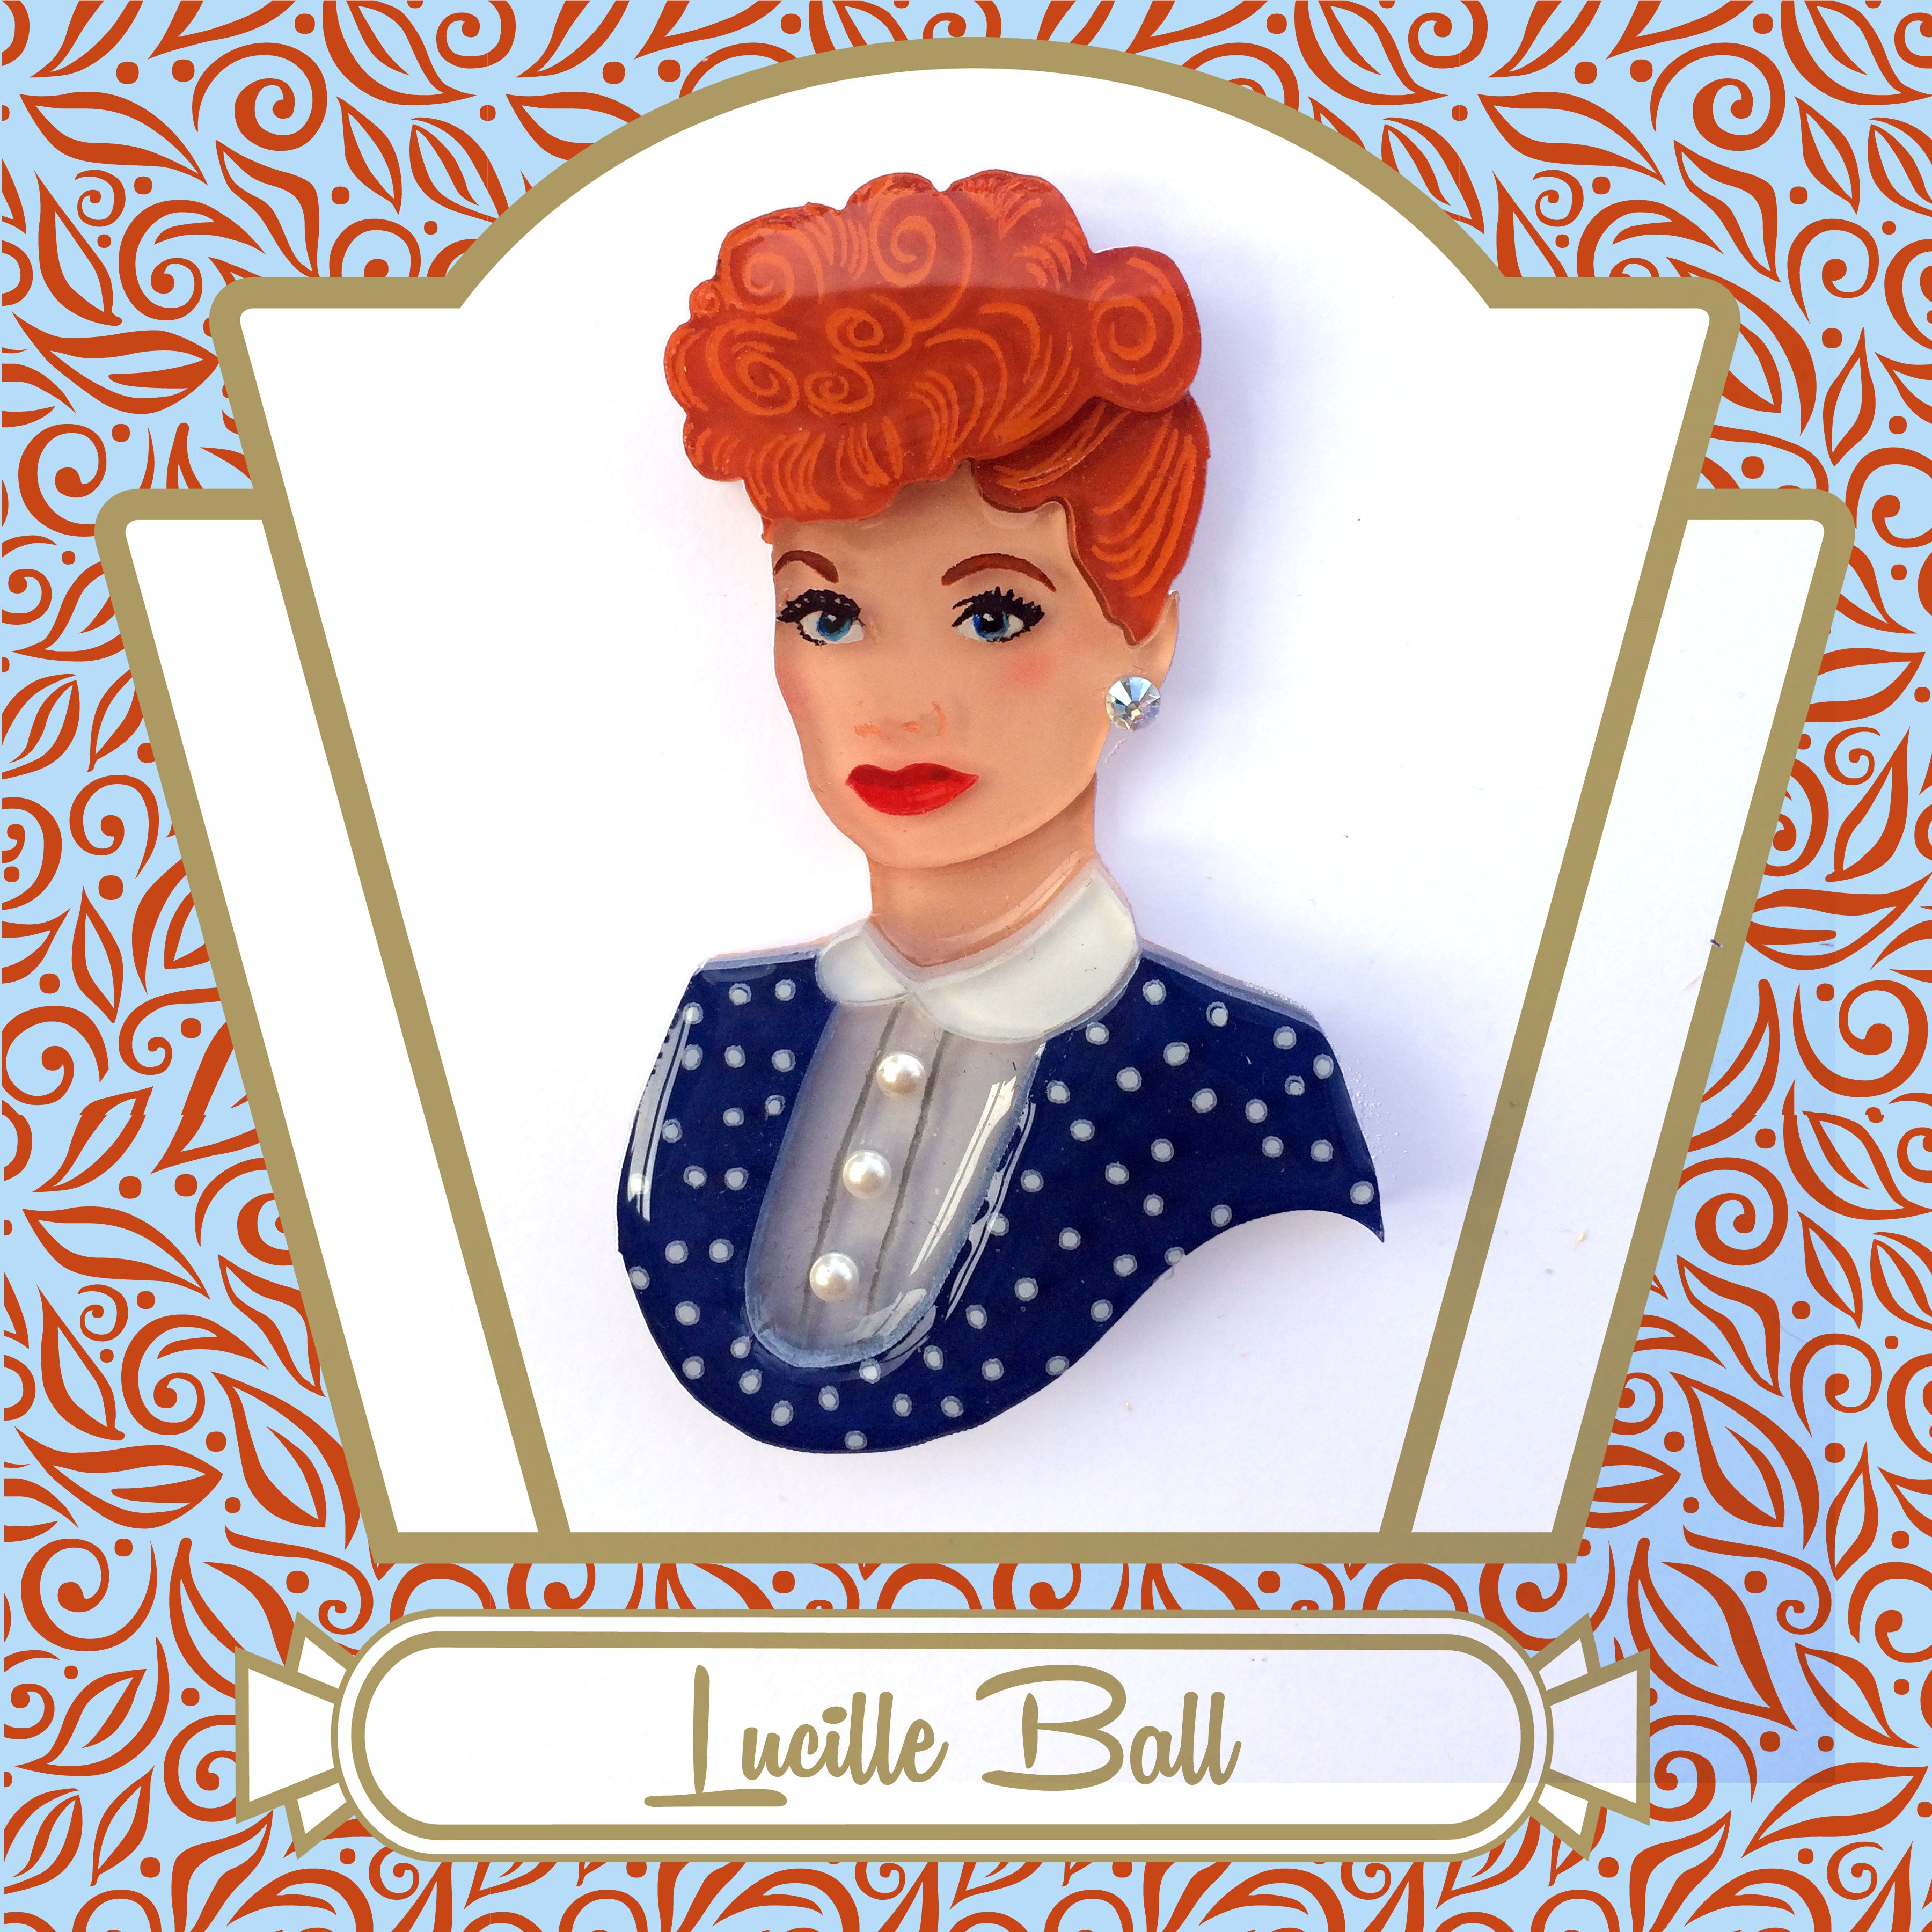 61da725fc Lucille Ball Vintage-Inspired Portrait Art Brooch by Tangerine Menagerie  (not for sale - in private collection)